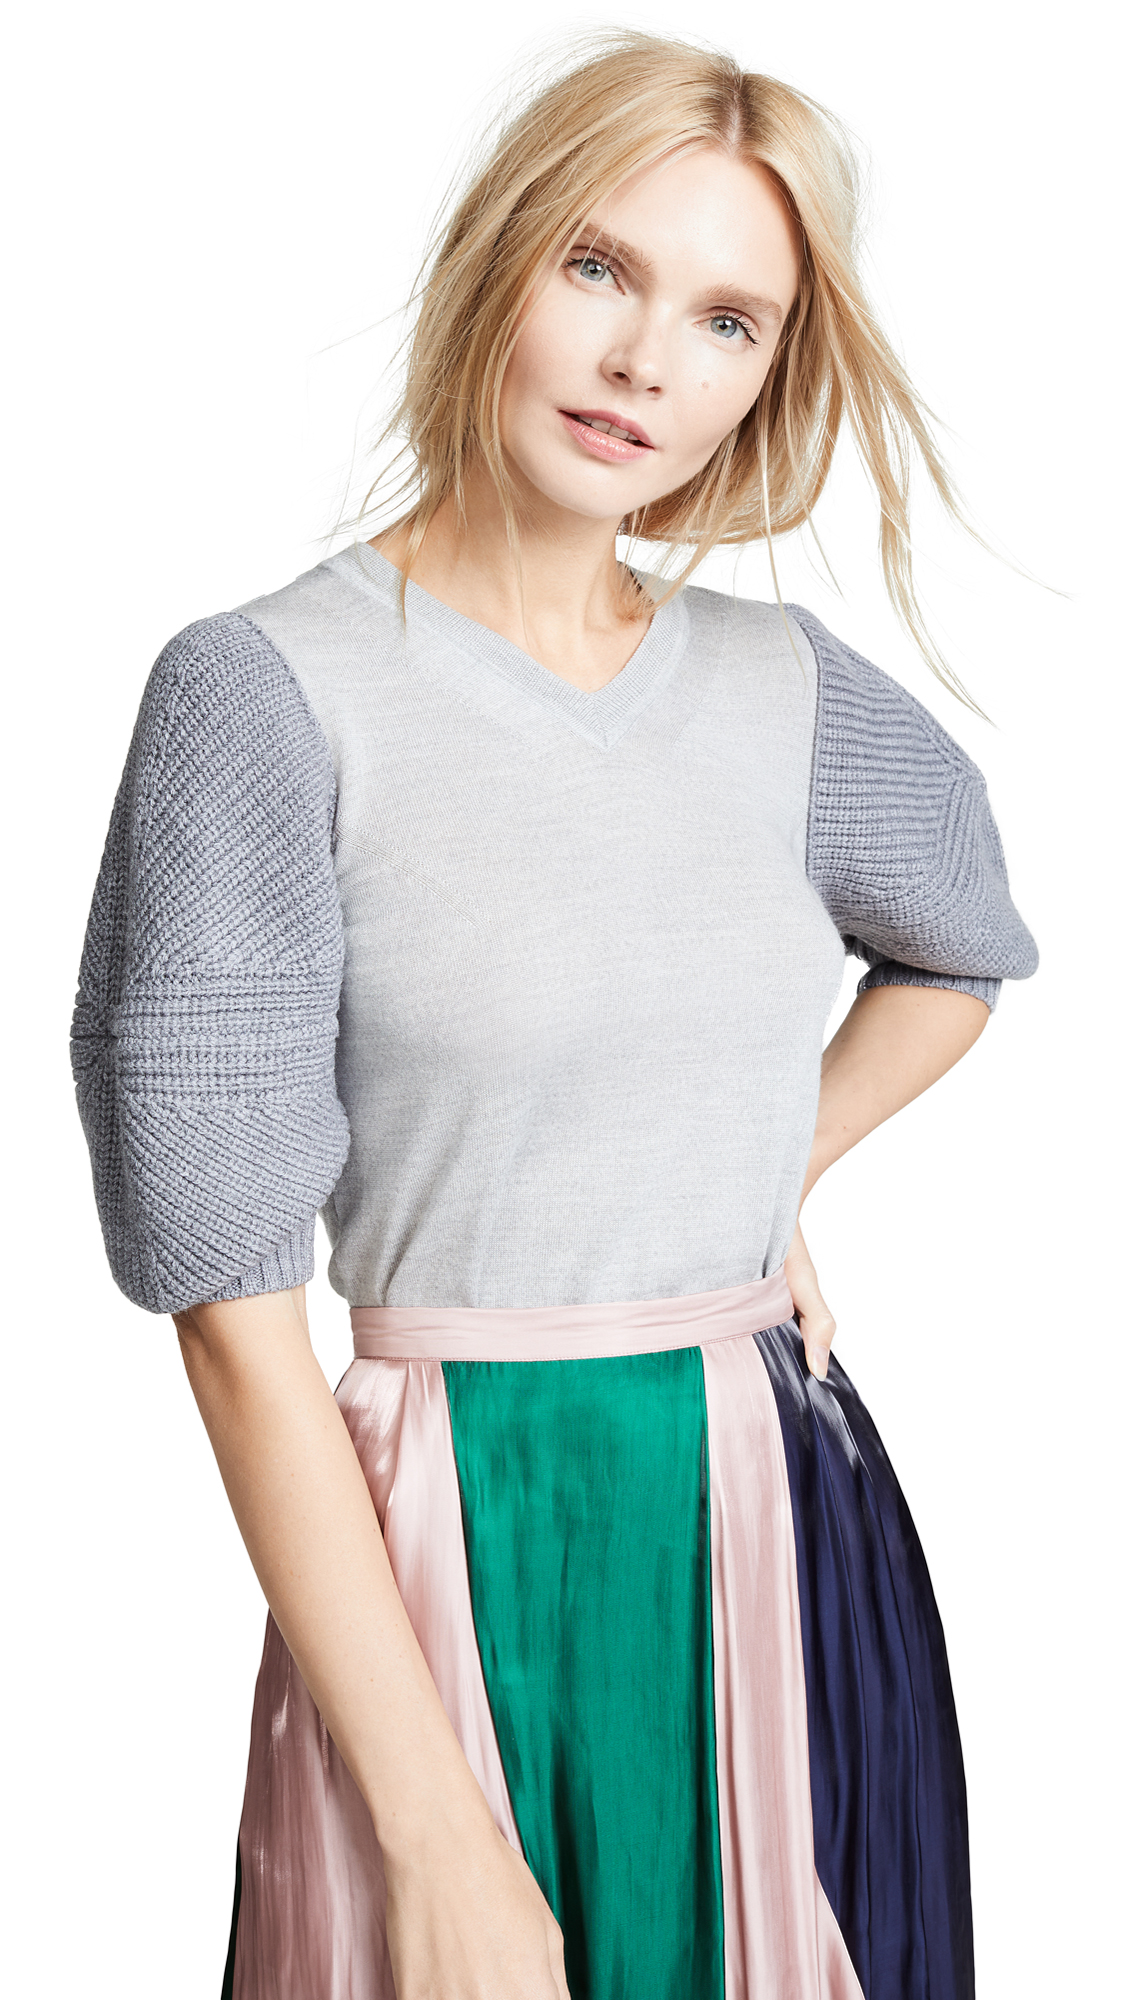 RHIE Magna Sleeve Top In Heather Grey